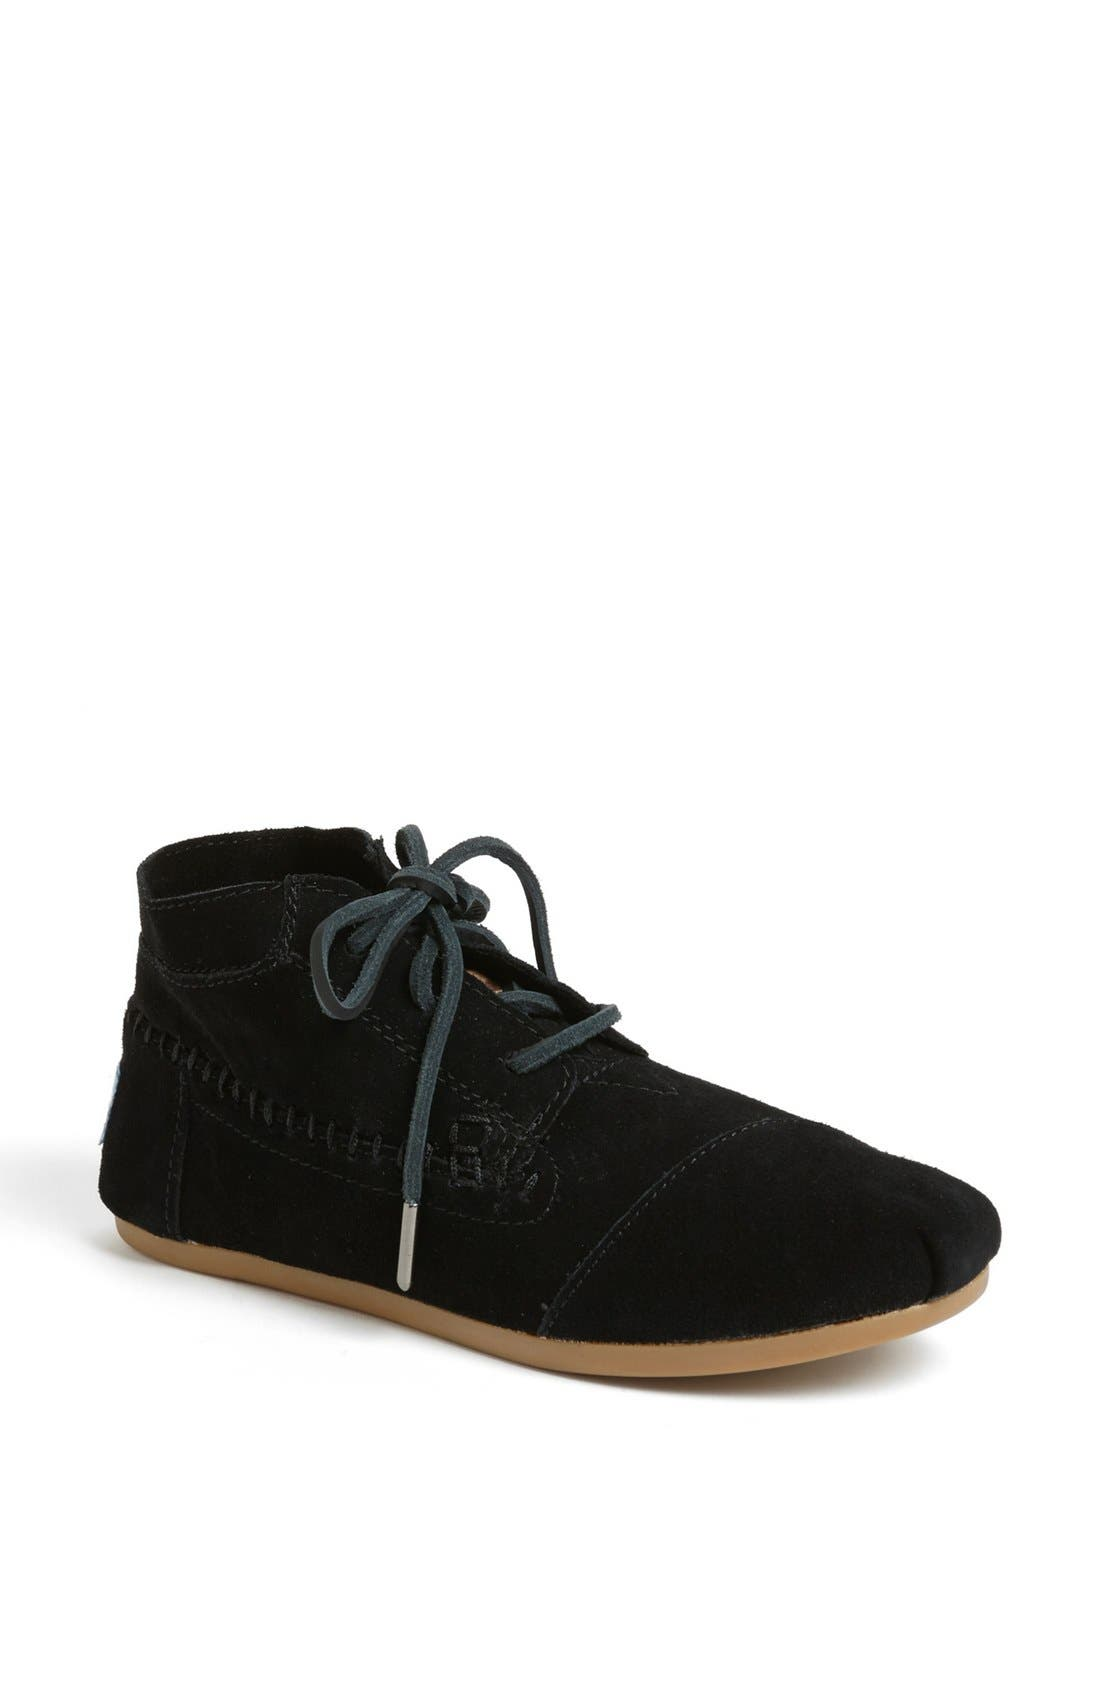 Alternate Image 1 Selected - TOMS Suede Boot (Women)